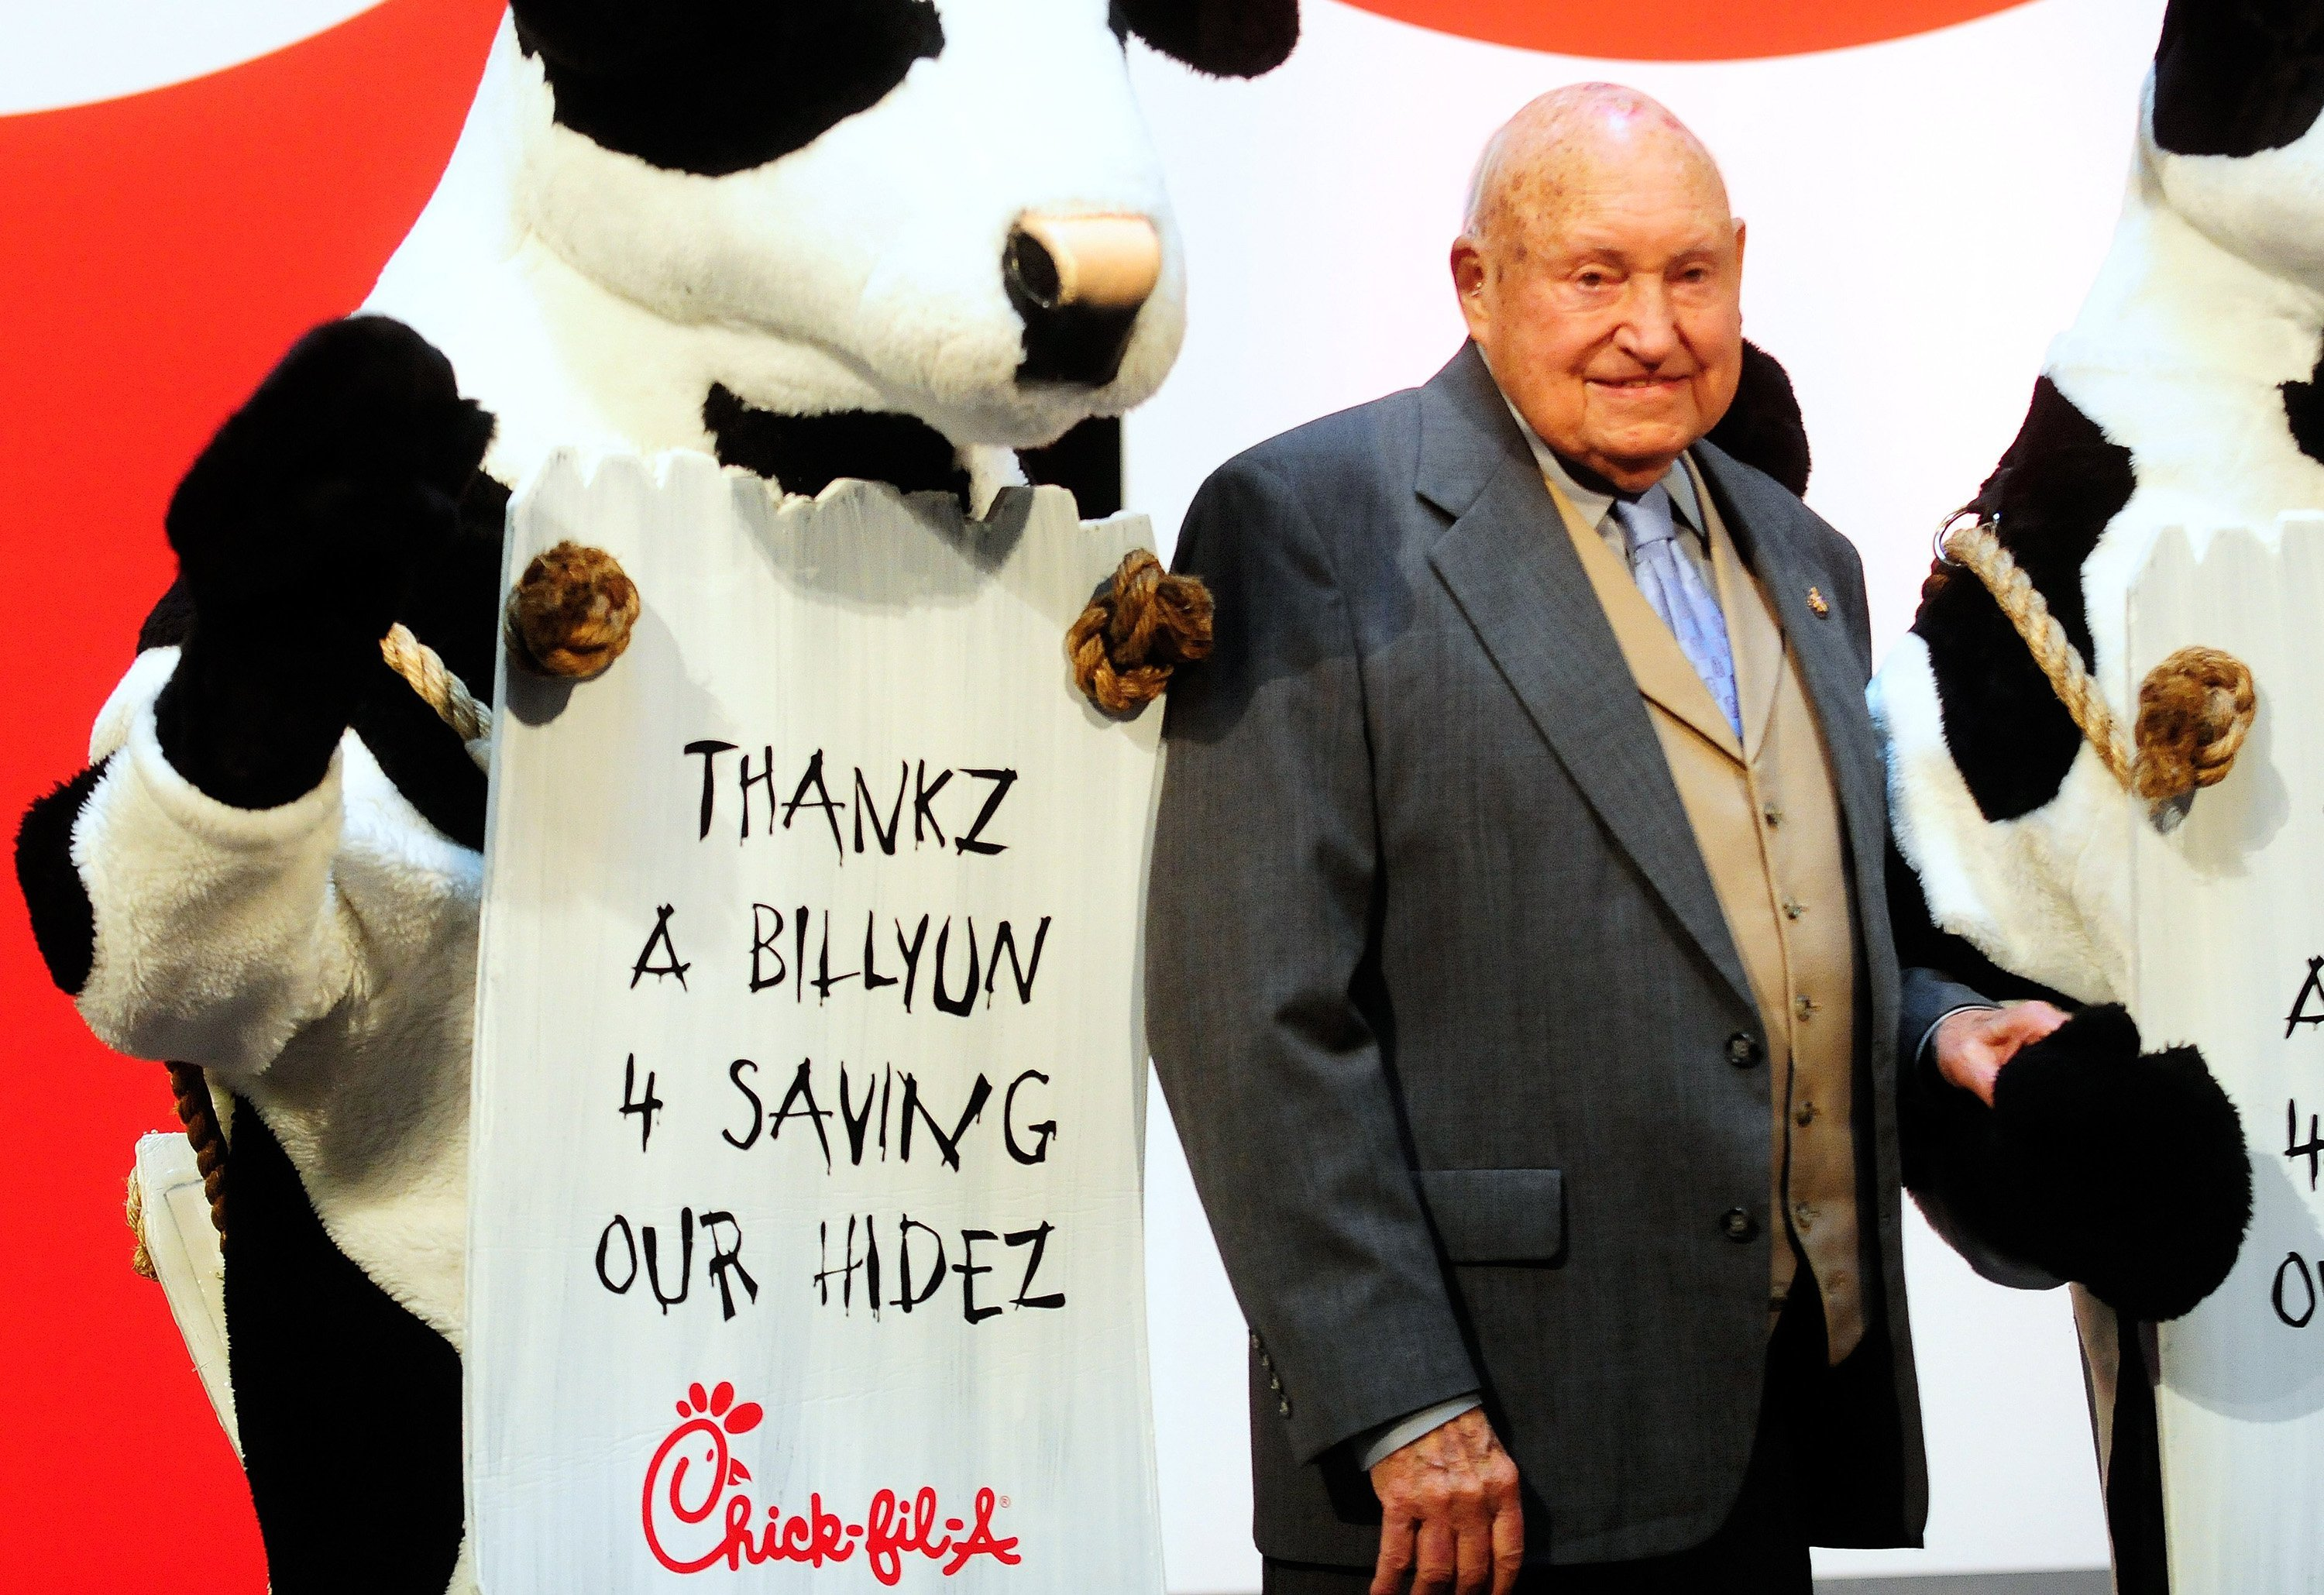 Leadership Lessons From Chick-fil-A Founder Truett Cathy